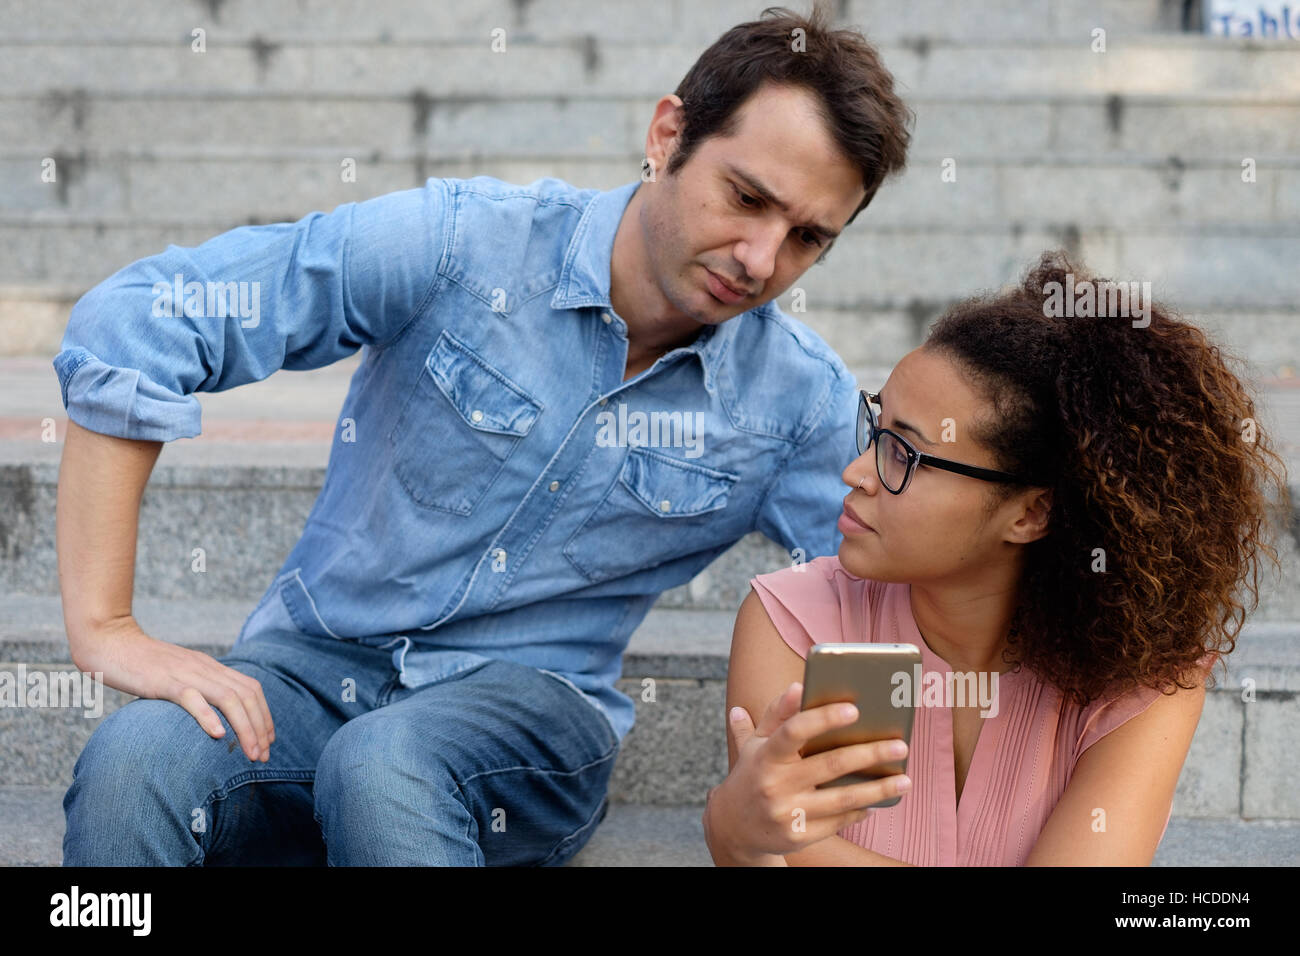 Man spying the mobile phone of her girlfriend - Stock Image